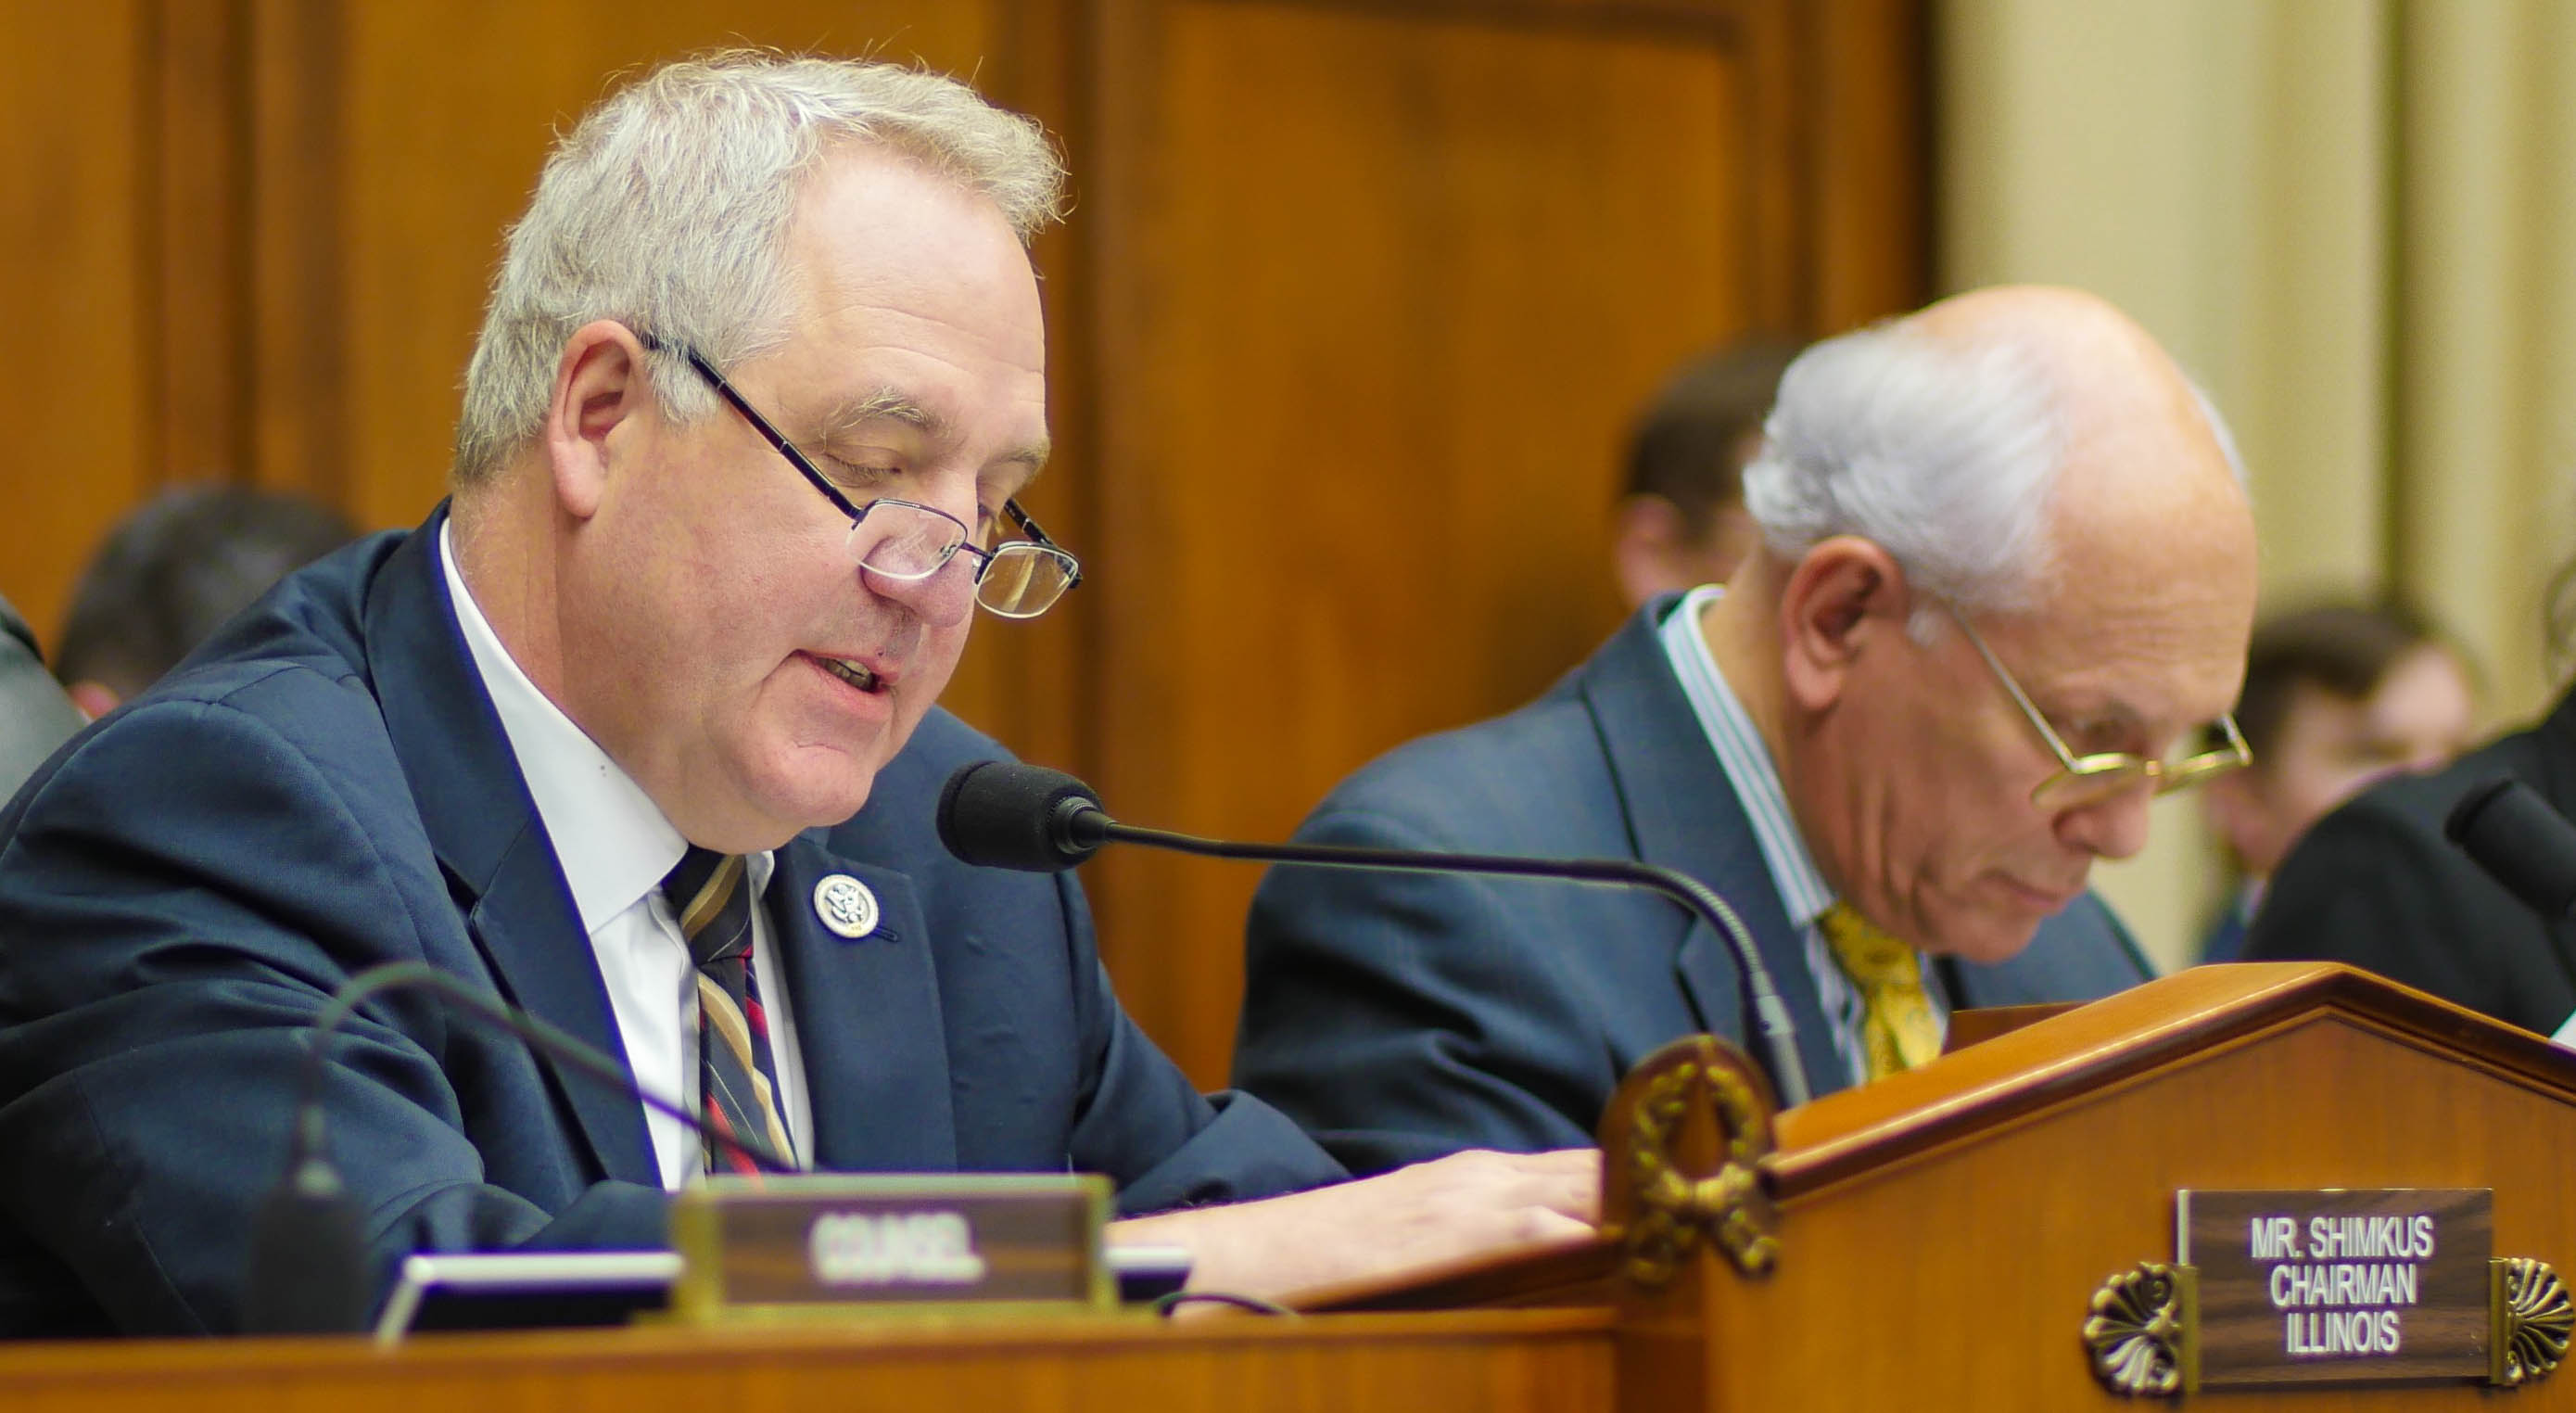 John Shimkus Courtesy of the House Committee on Energy and Commerce